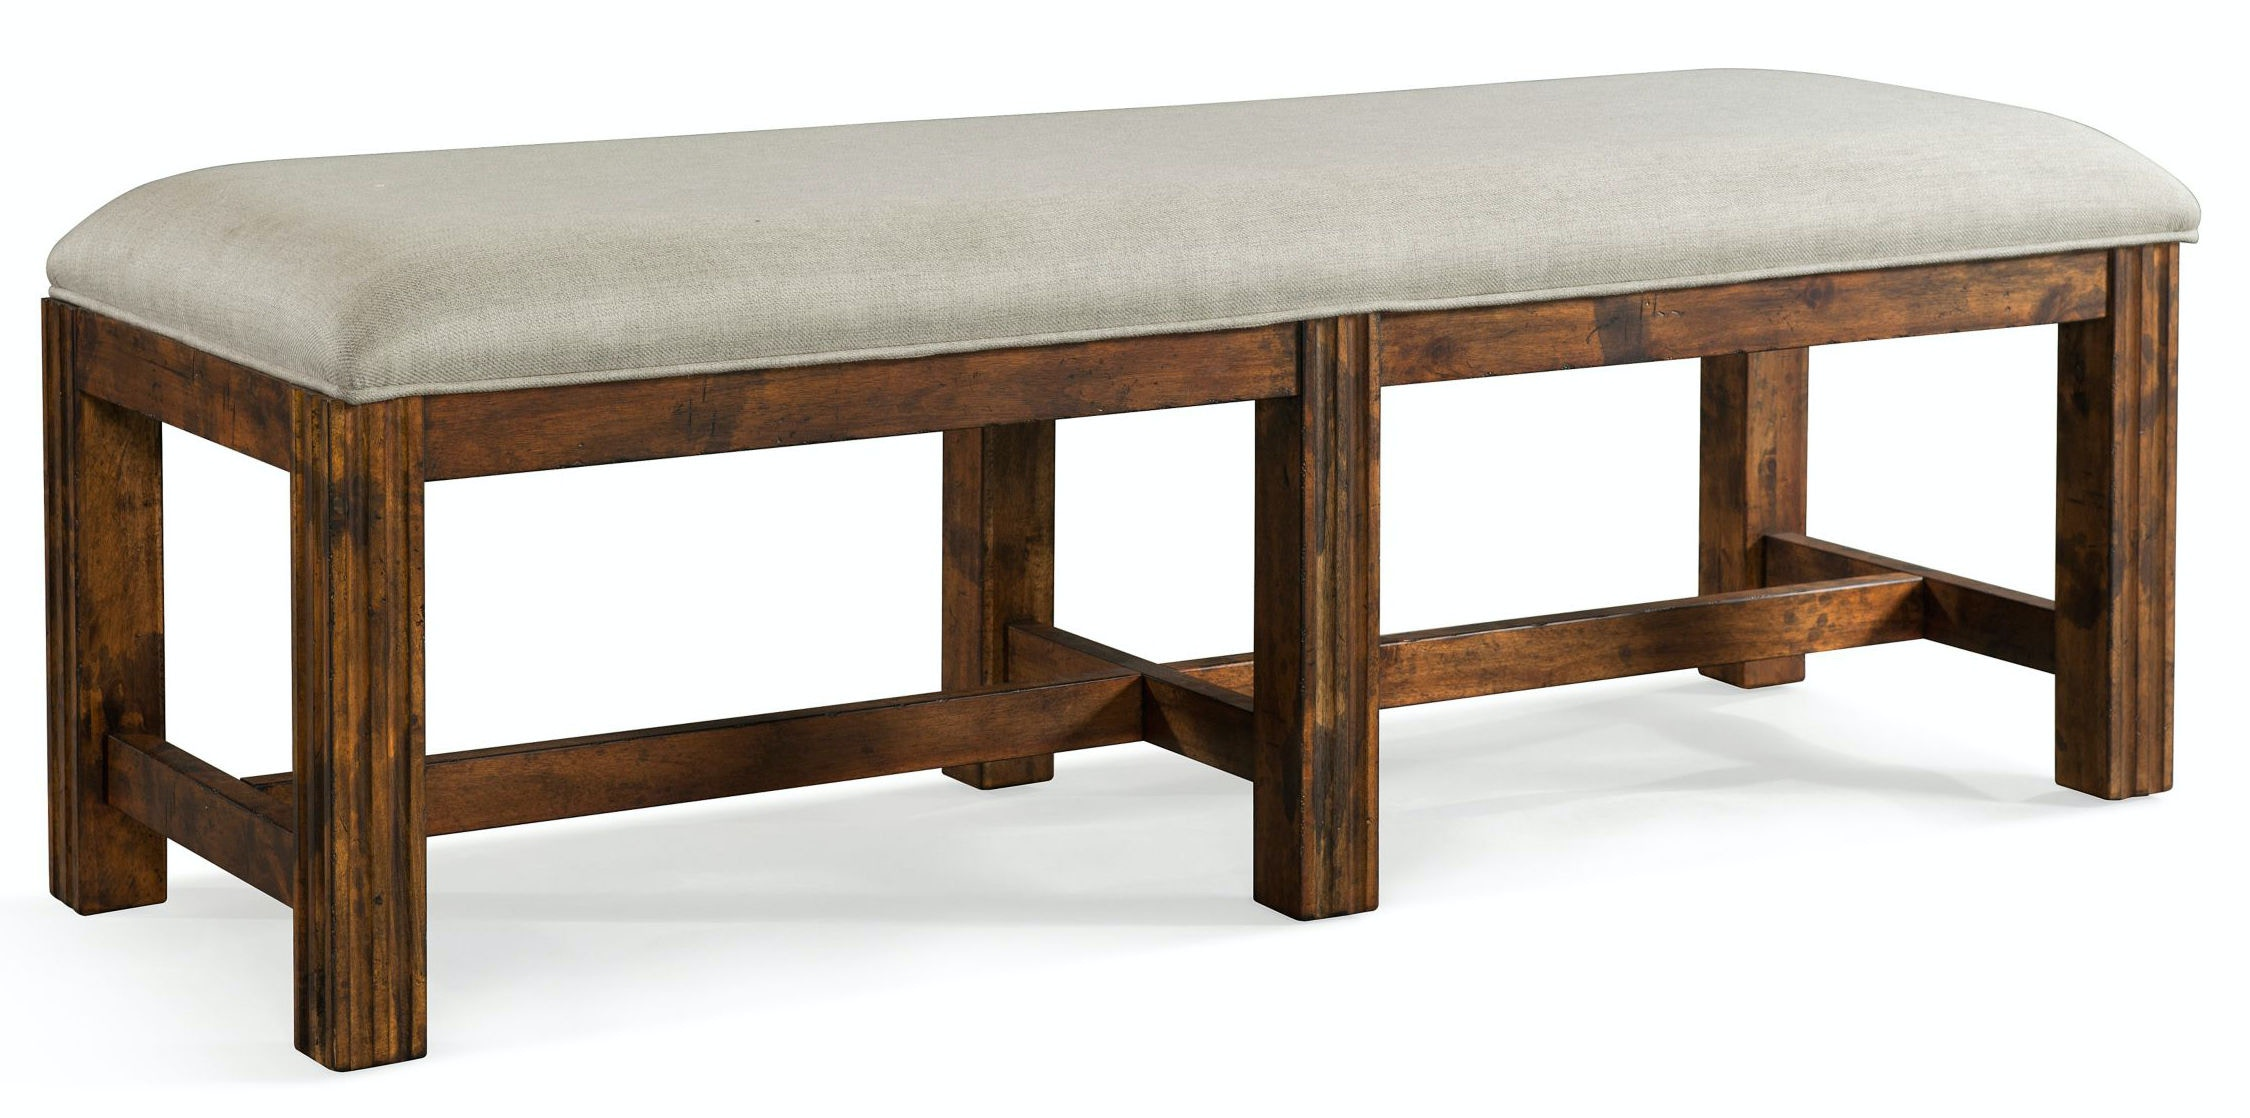 trisha yearwood carroll bed bench